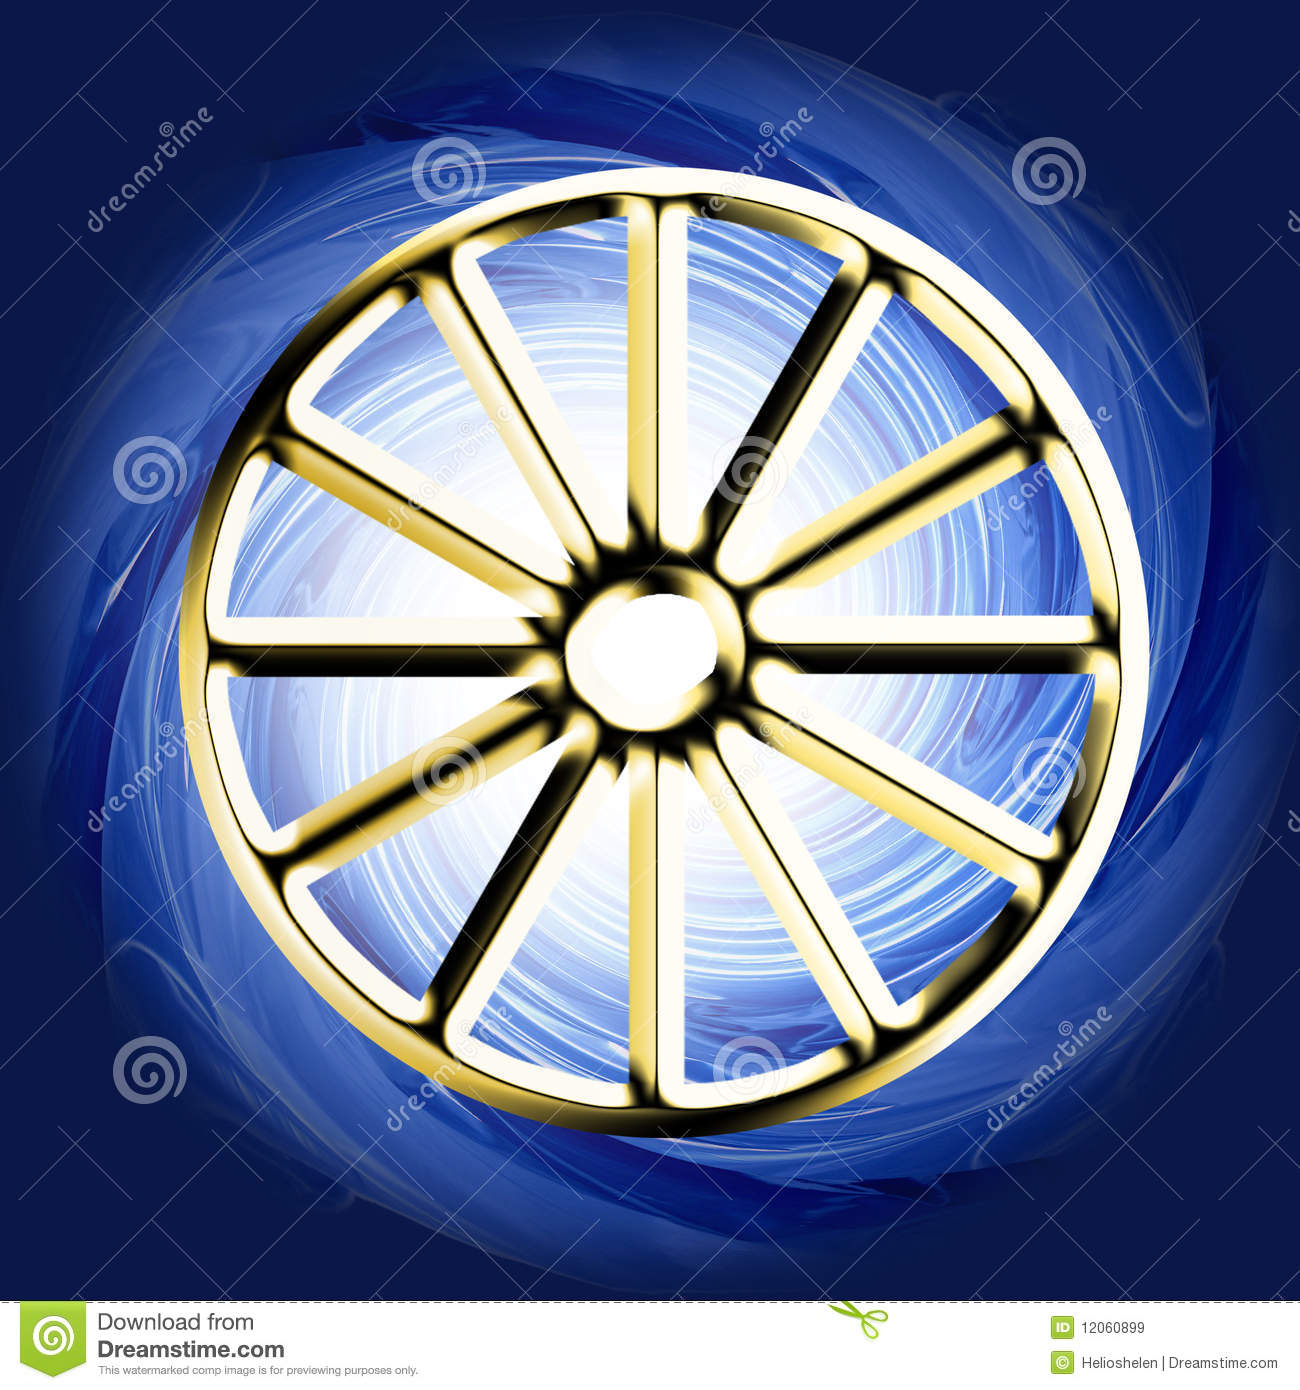 golden religious symbol - buddhist wheel stock image